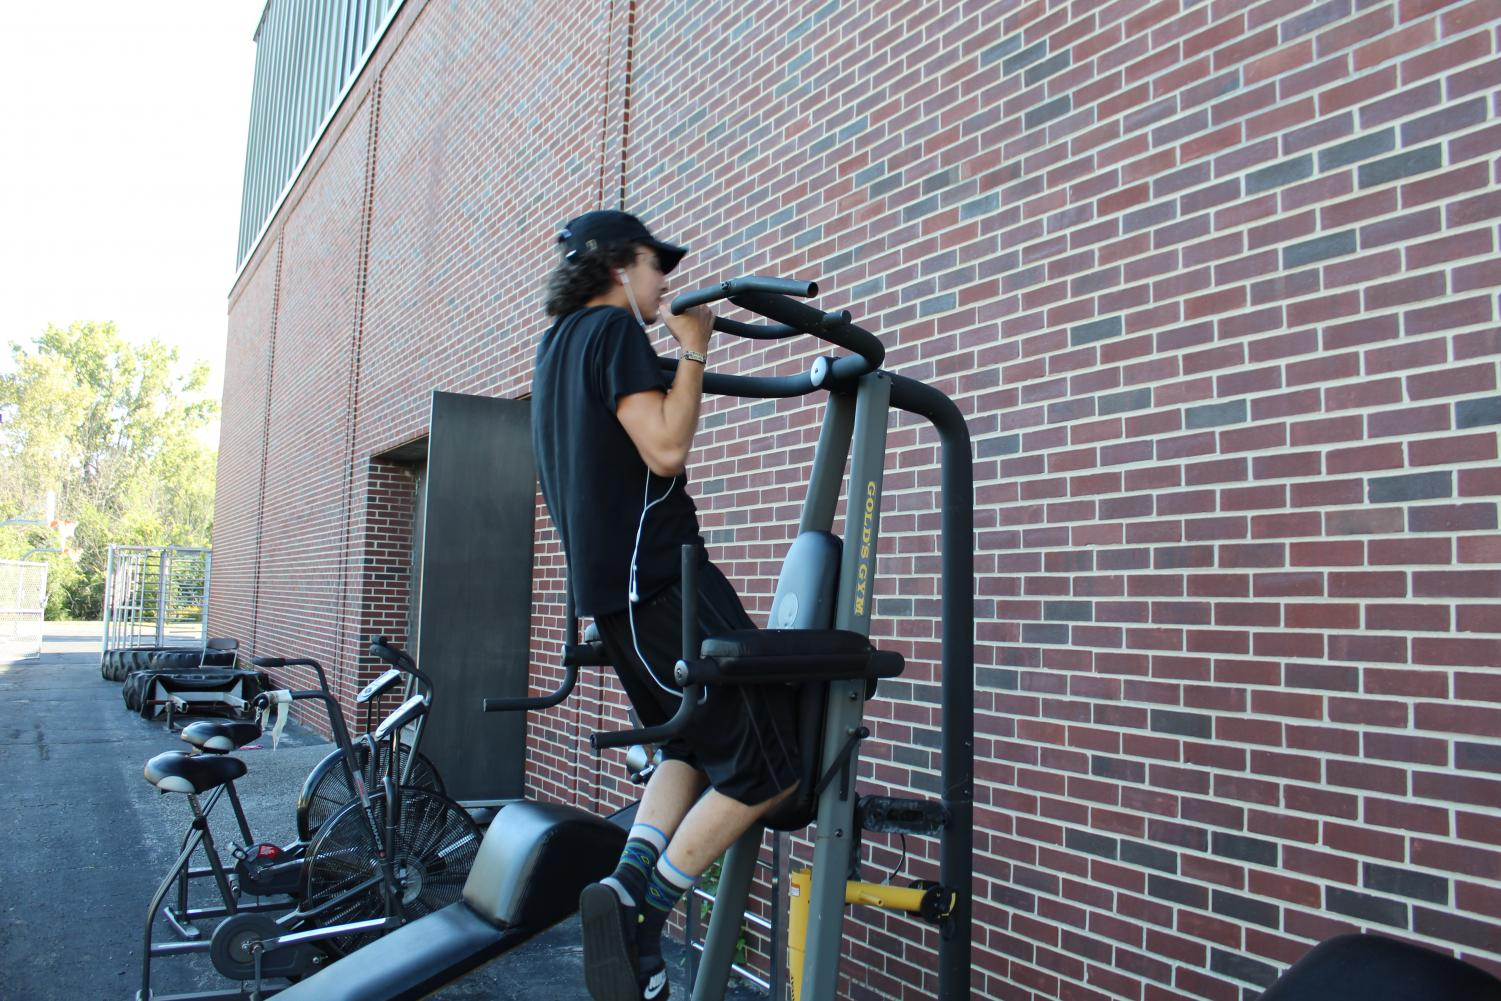 Joshua Perez, Fitness Center employee, works out on the Lion's Cage equipment outside the east side of the Fitness center.